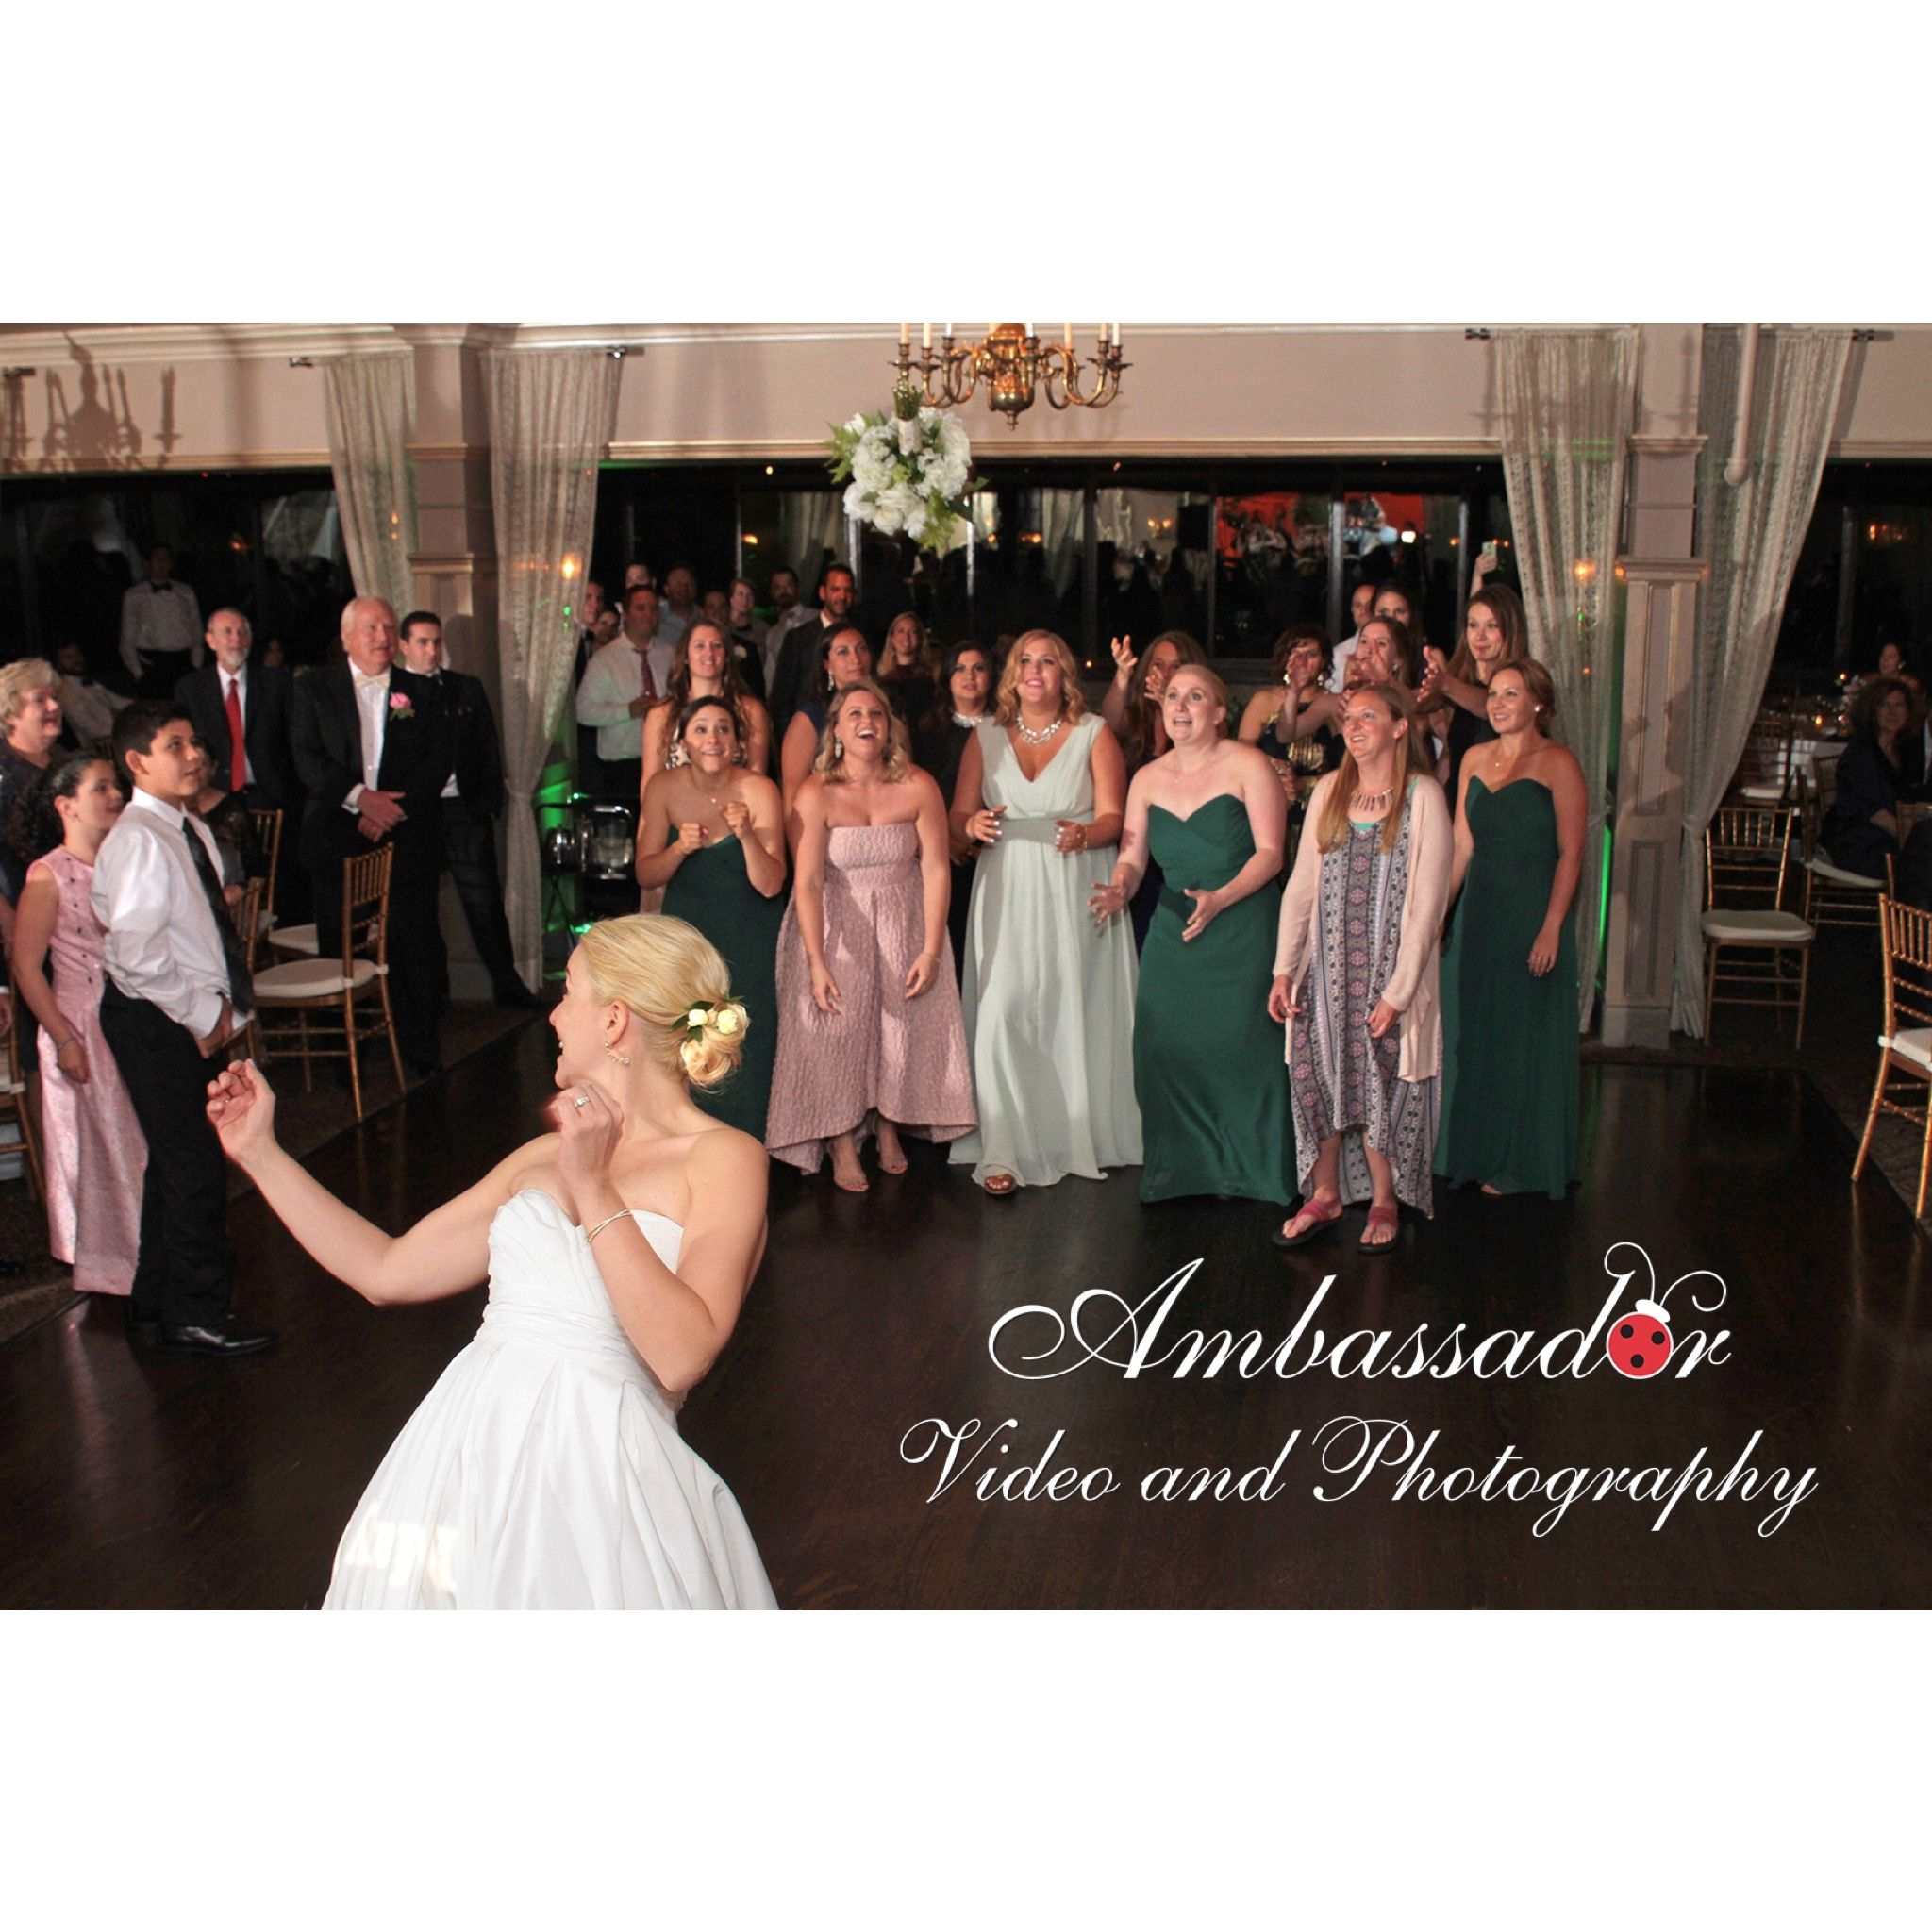 Now that's some pass! AmbassadorVideoAndPhotography VideoAndPhotography.com  http://bit.ly/1wQ6i8S #RidgewoodNJ #RidgewoodNJPhotographer #ridgewoodweddingphotographer #bergencountyweddingphotography #njweddingphotographer #ramseygolfandcountryclub #ramseycountryclub #golfcourse #countryclub  #catering #clubhouse #weddingphotographernj #weddingdresses #weddingphotographynj #bergencountywedding #bergencountyweddingphotography #weddingreception #party #reception #destinationweddingphotographer